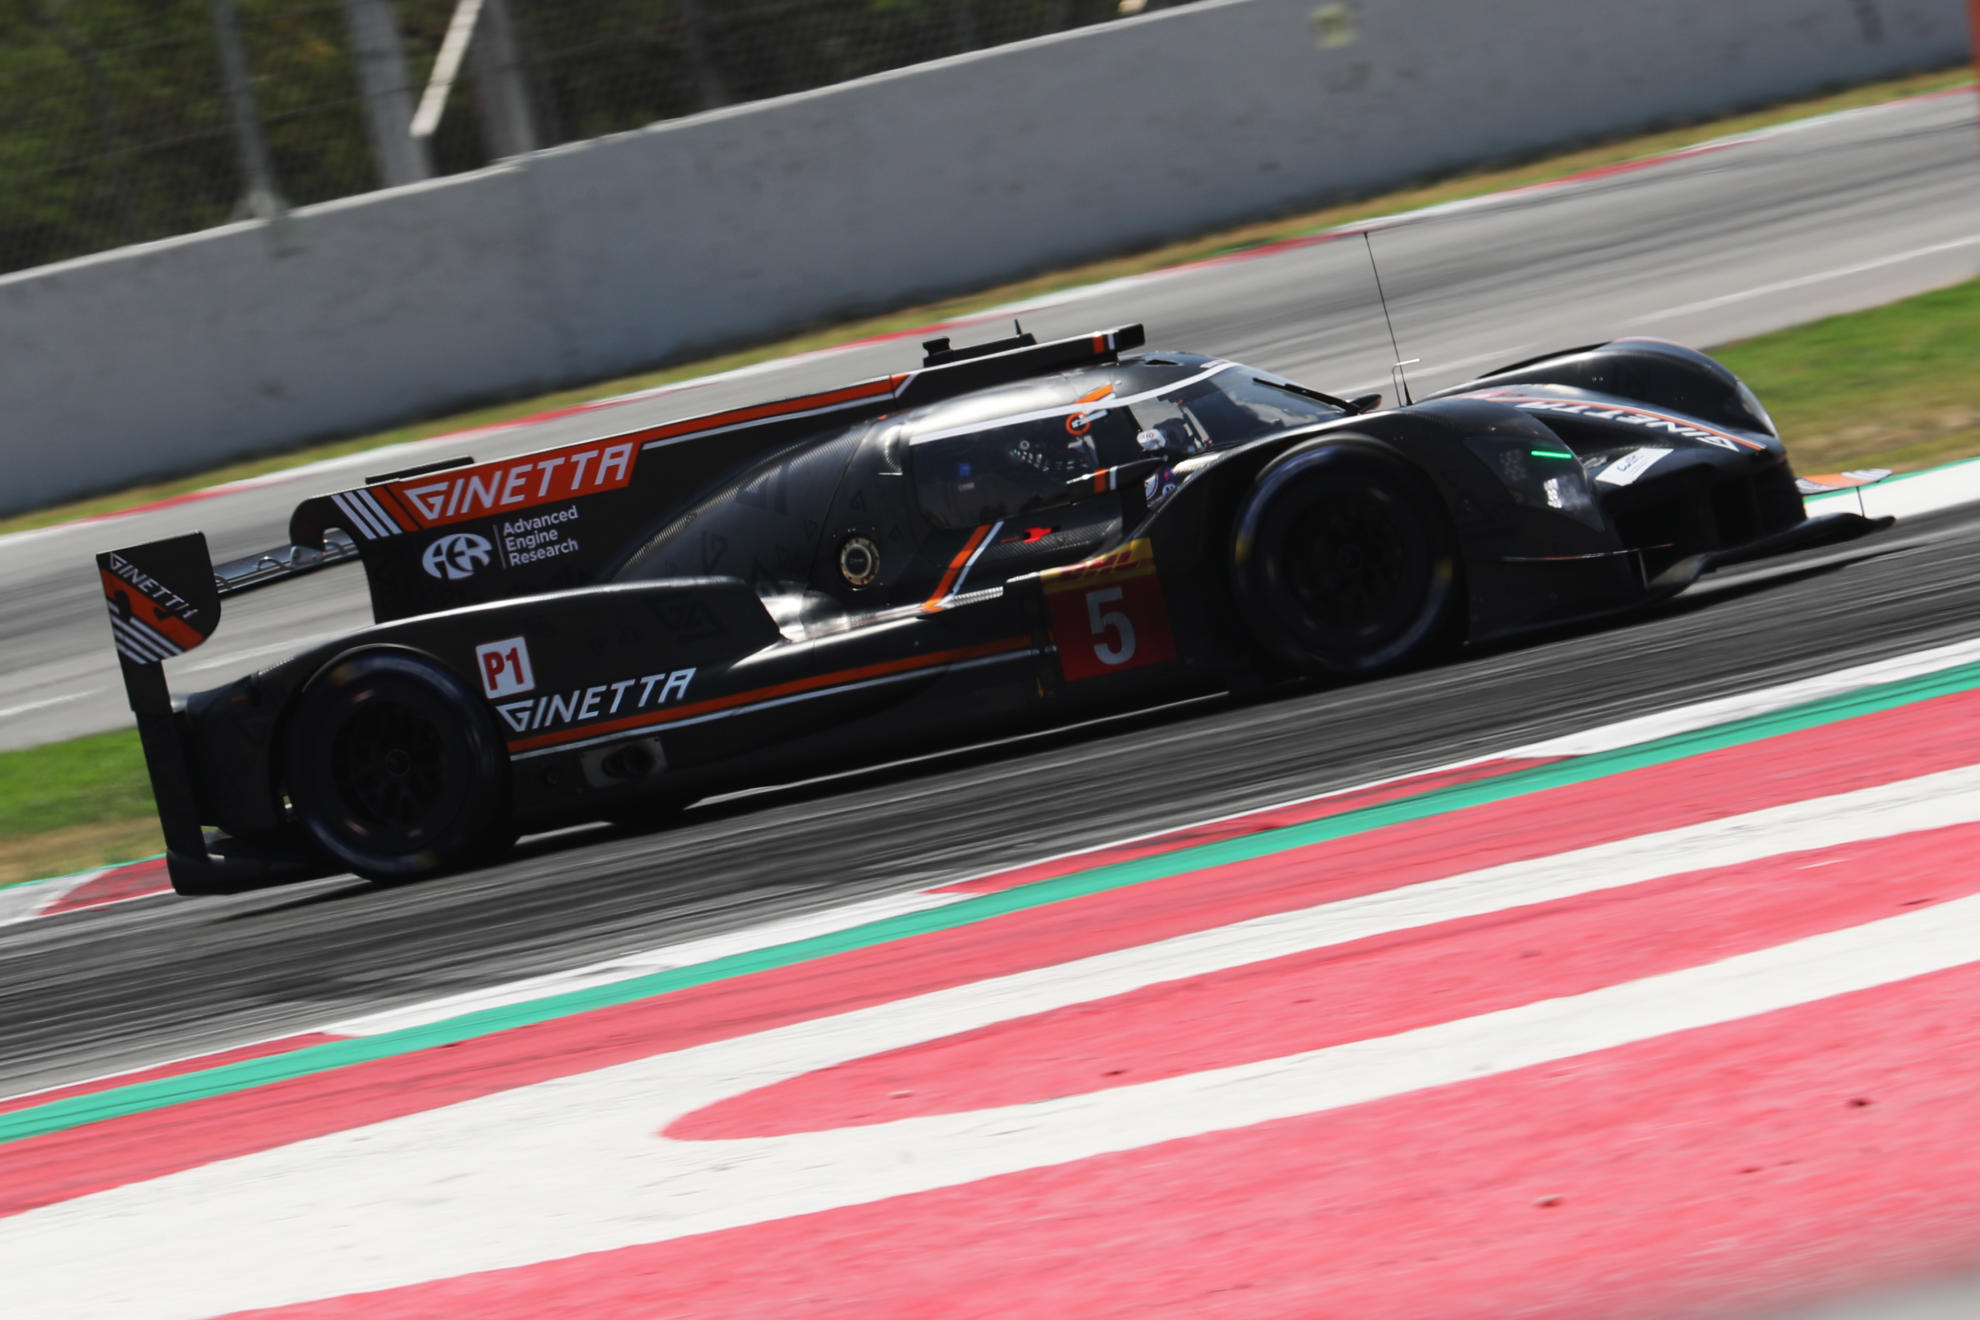 Team LNT Confirm Silverstone Driver Line-Ups For Ginetta LMP1s